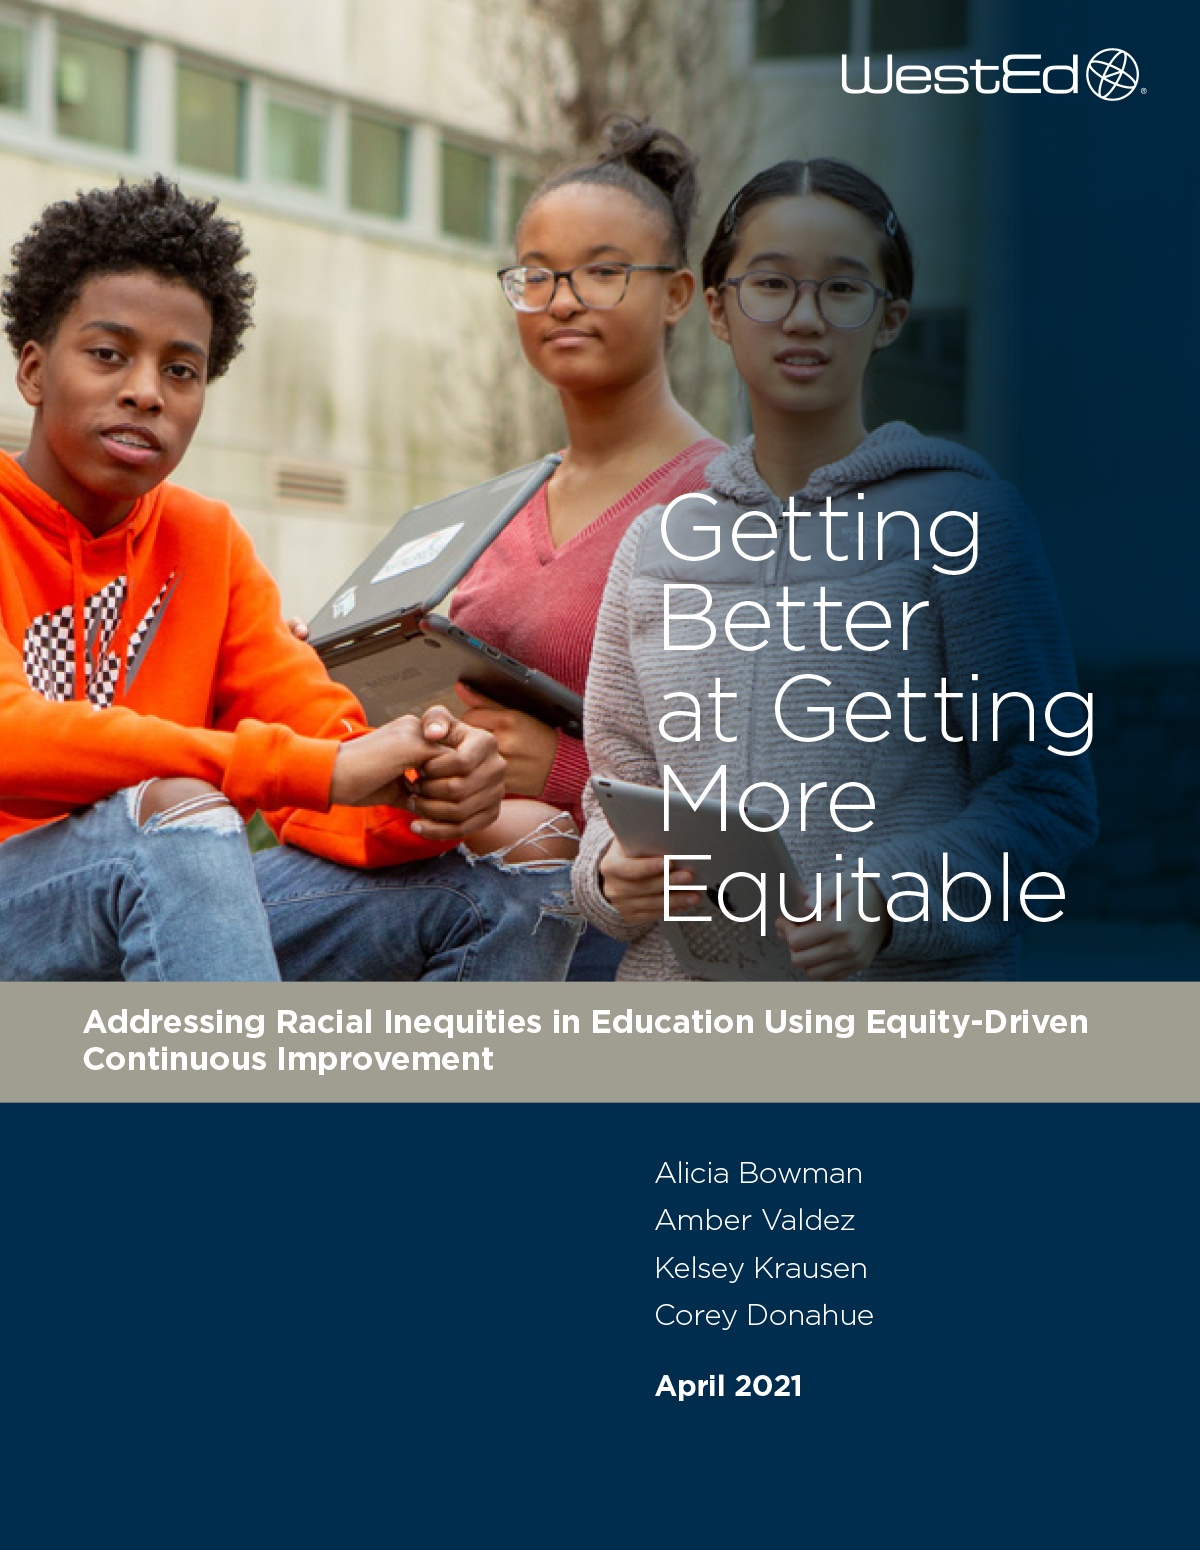 Getting Better at Getting More Equitable